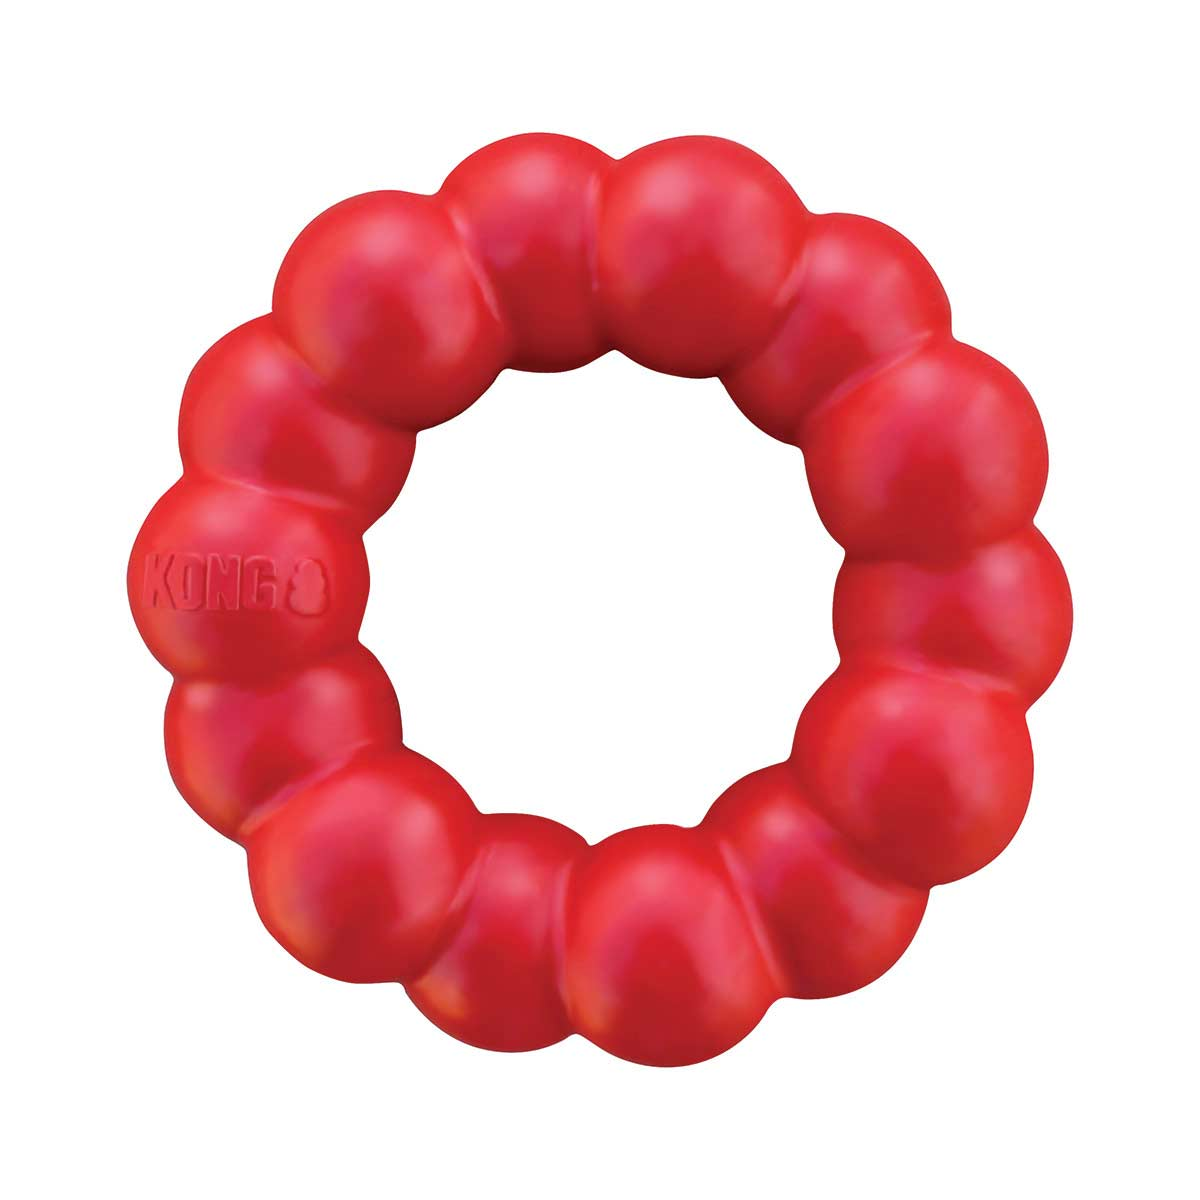 Medium/Large KONG Ring Toy for Dogs